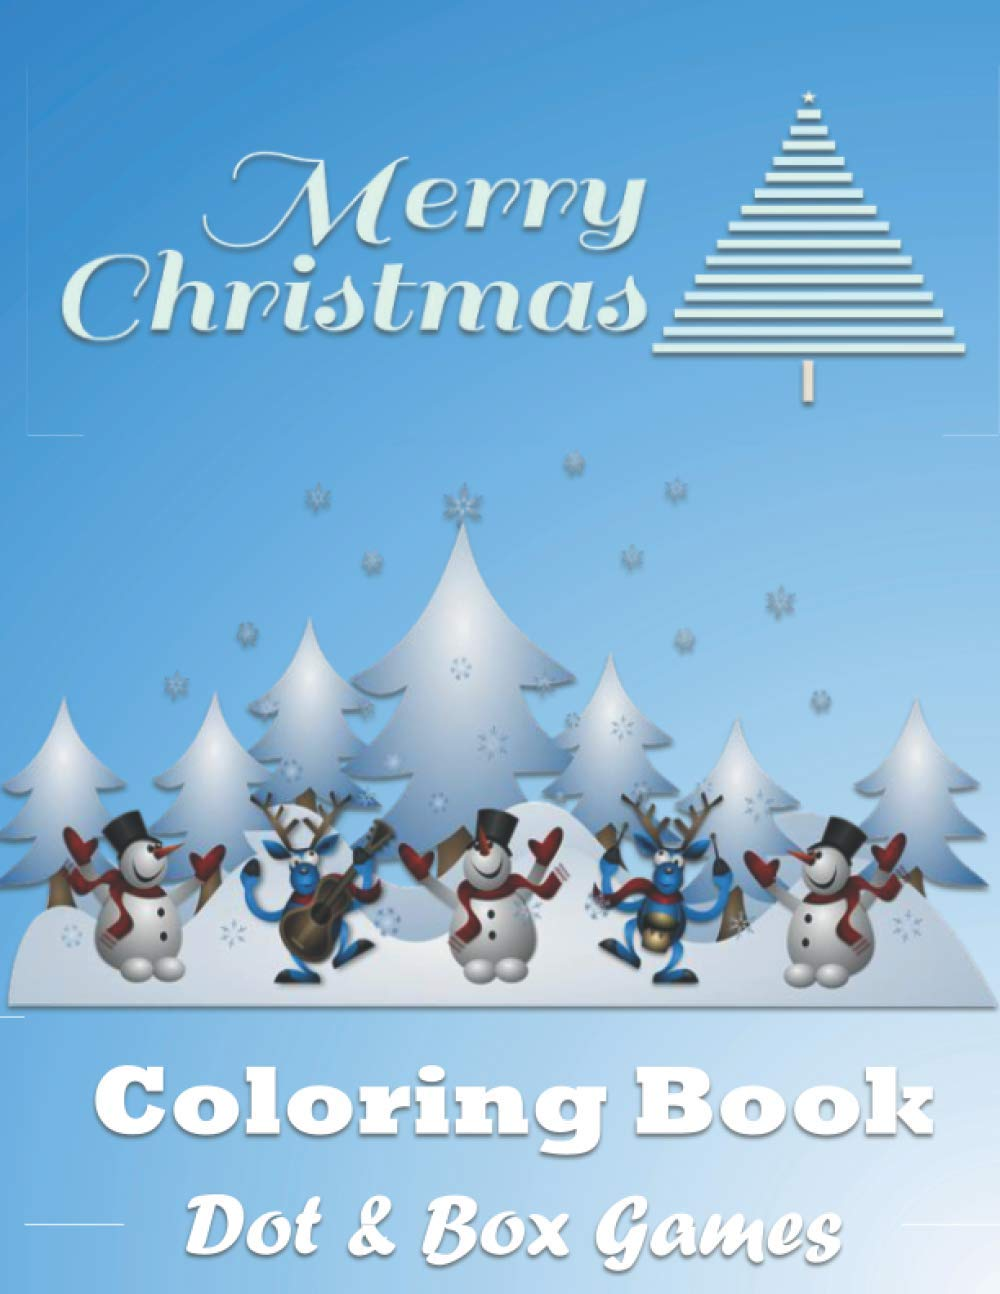 Christmas Coloring Book With Dot Box Games Santa Claus Coloring Book Winter Coloring Book Great For Kids Of All Ages 8 5 X 11 62 Pages Books Gunny C 9798571131650 Amazon Com Books